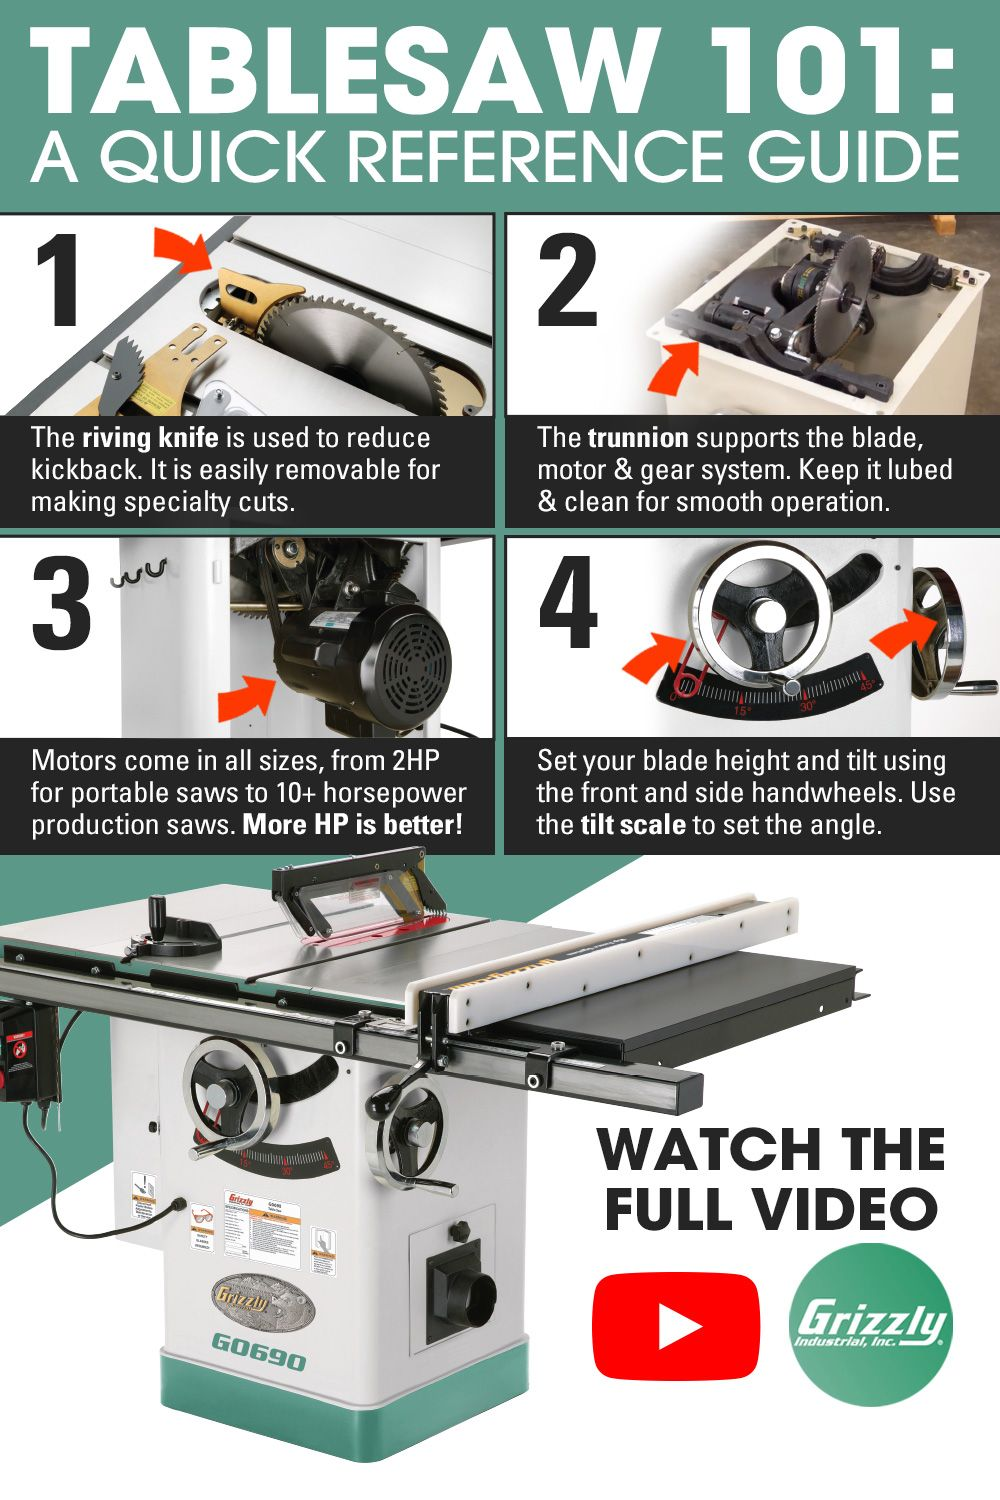 Table Saw Overview Everything You Want To Know About A Table Saw What Can It Do What Makes A Table Saw A Table Saw Grizzly Table Saw Table Saw Make A